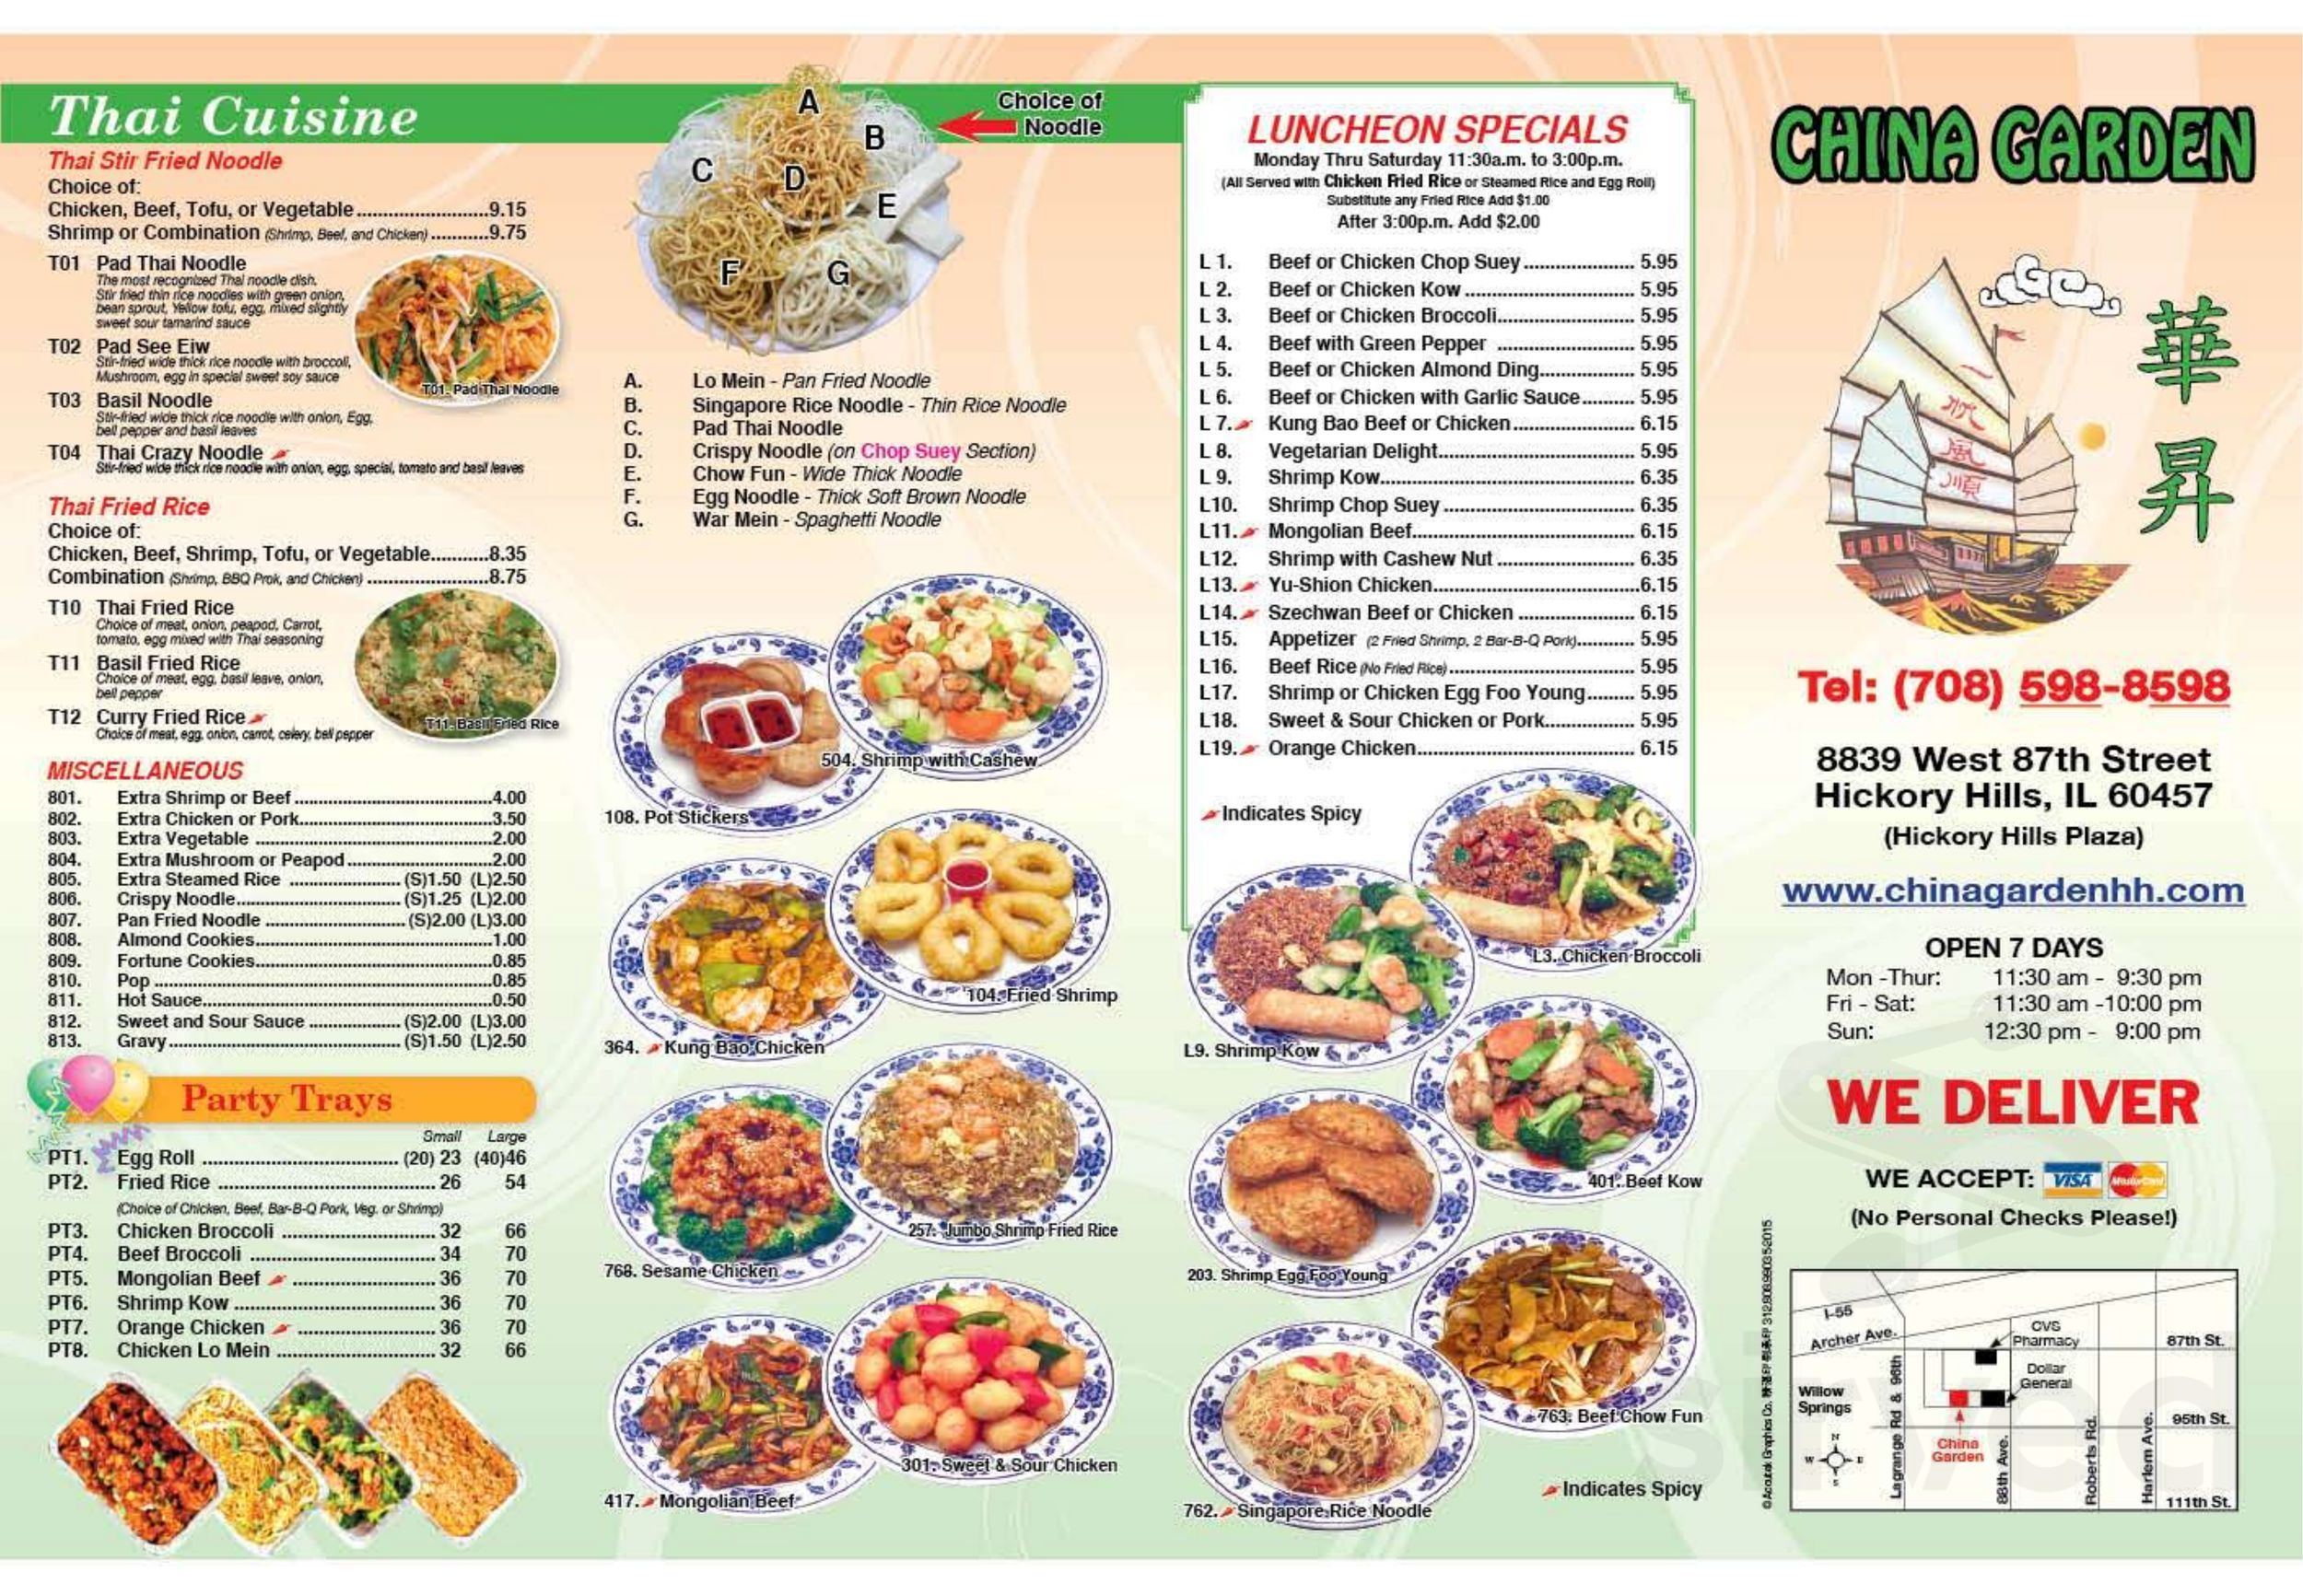 China Garden Restaurant Menu In Hickory Hills Illinois